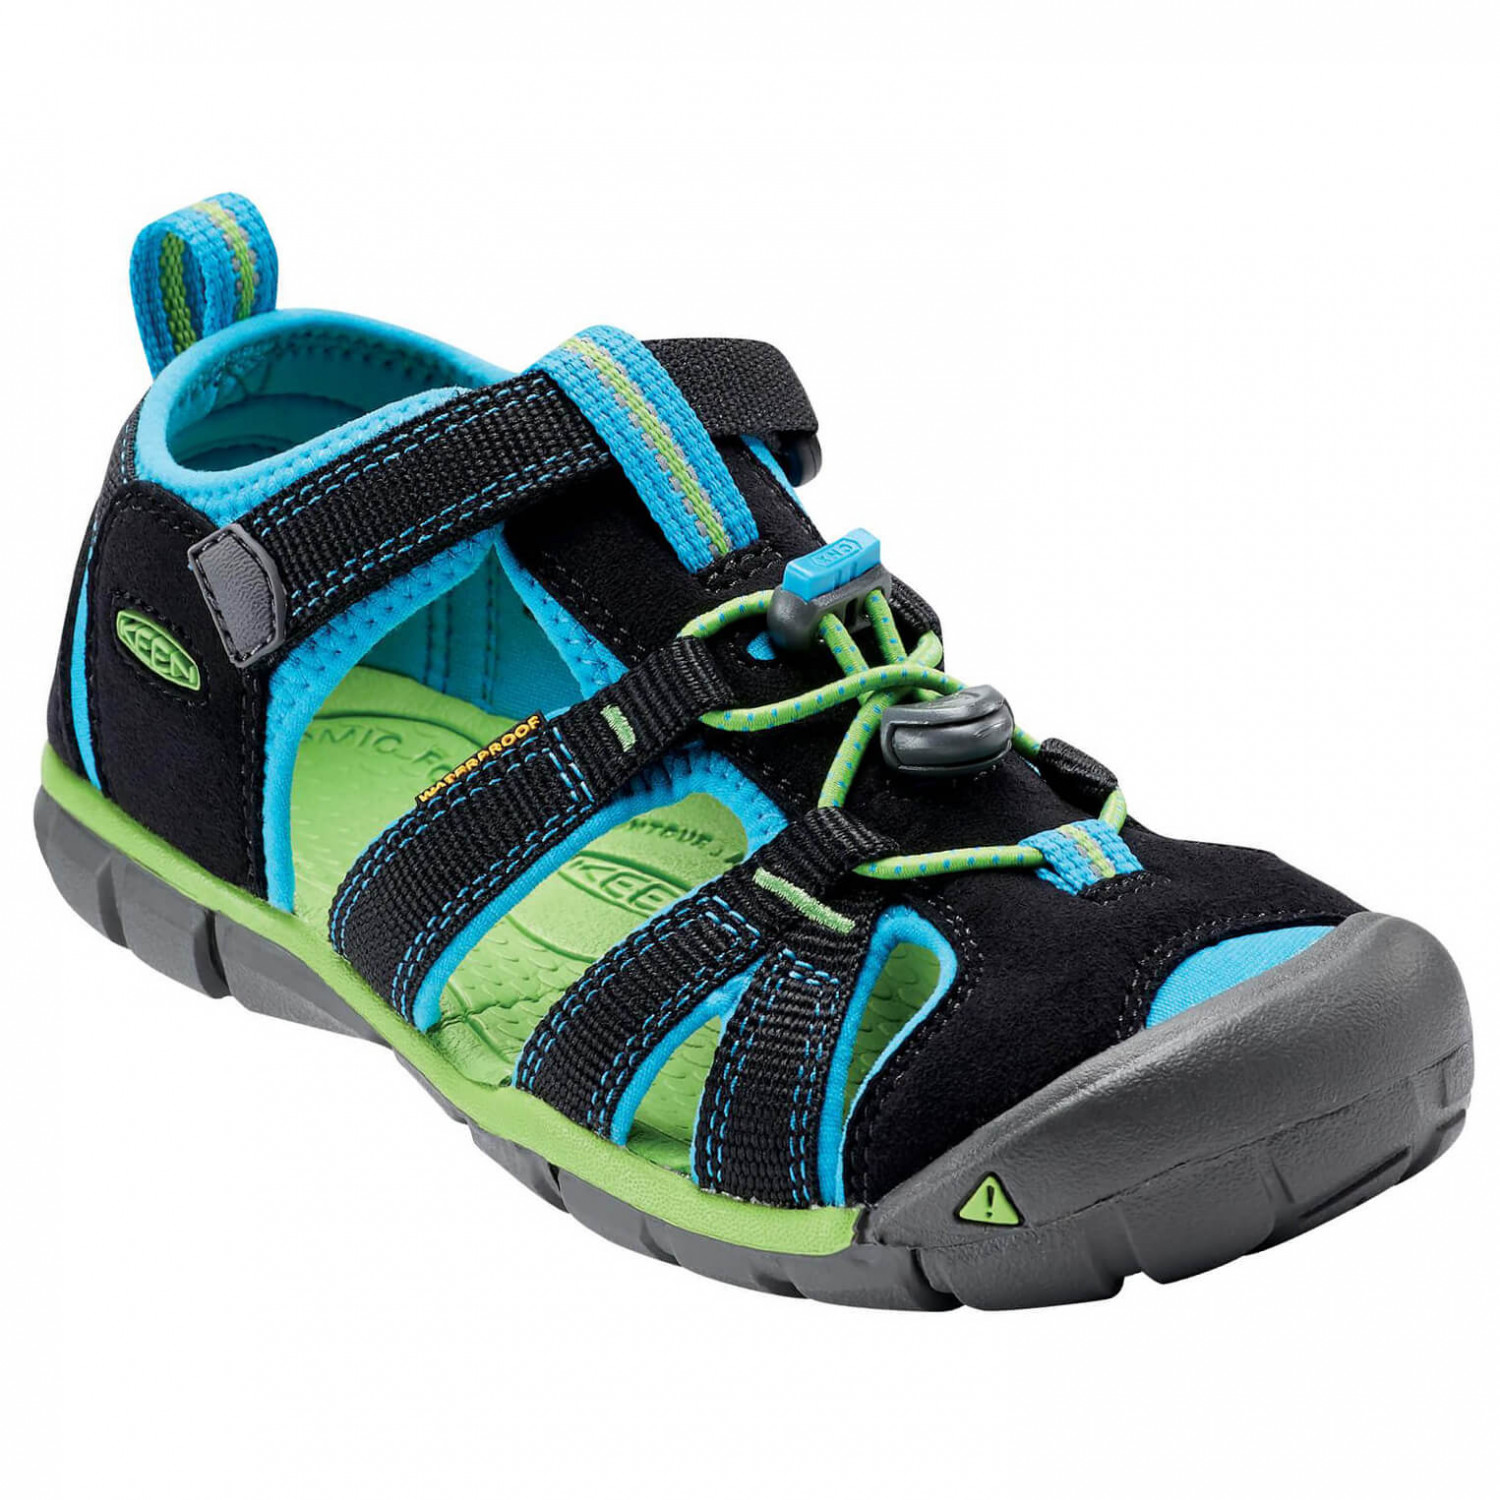 KEEN delivers sustainable style and outdoor performance for water, trails, or city lasourisglobe-trotteuse.tk Canada Official Online Store FREE SHIPPING AND RETURNS in Canada Shop for KEEN shoes, KEEN sandals and boots that perform on the trail, in the water or on city streets KEEN Canada delivers sustainable style and outdoor performance with satisfaction.